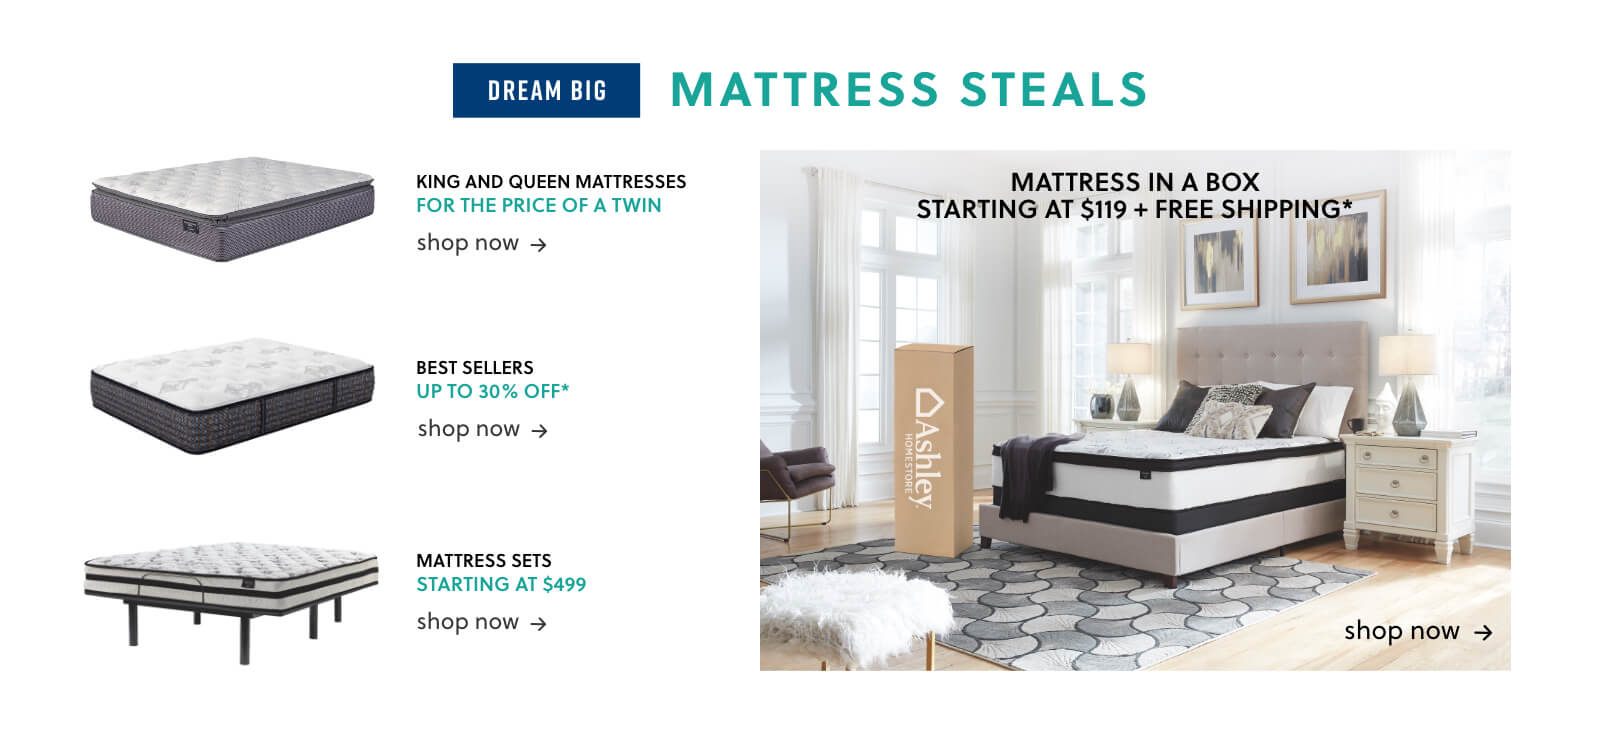 King and Queen Mattresses, Best Selling Mattresses, Mattresses Sets, Mattress in a Box